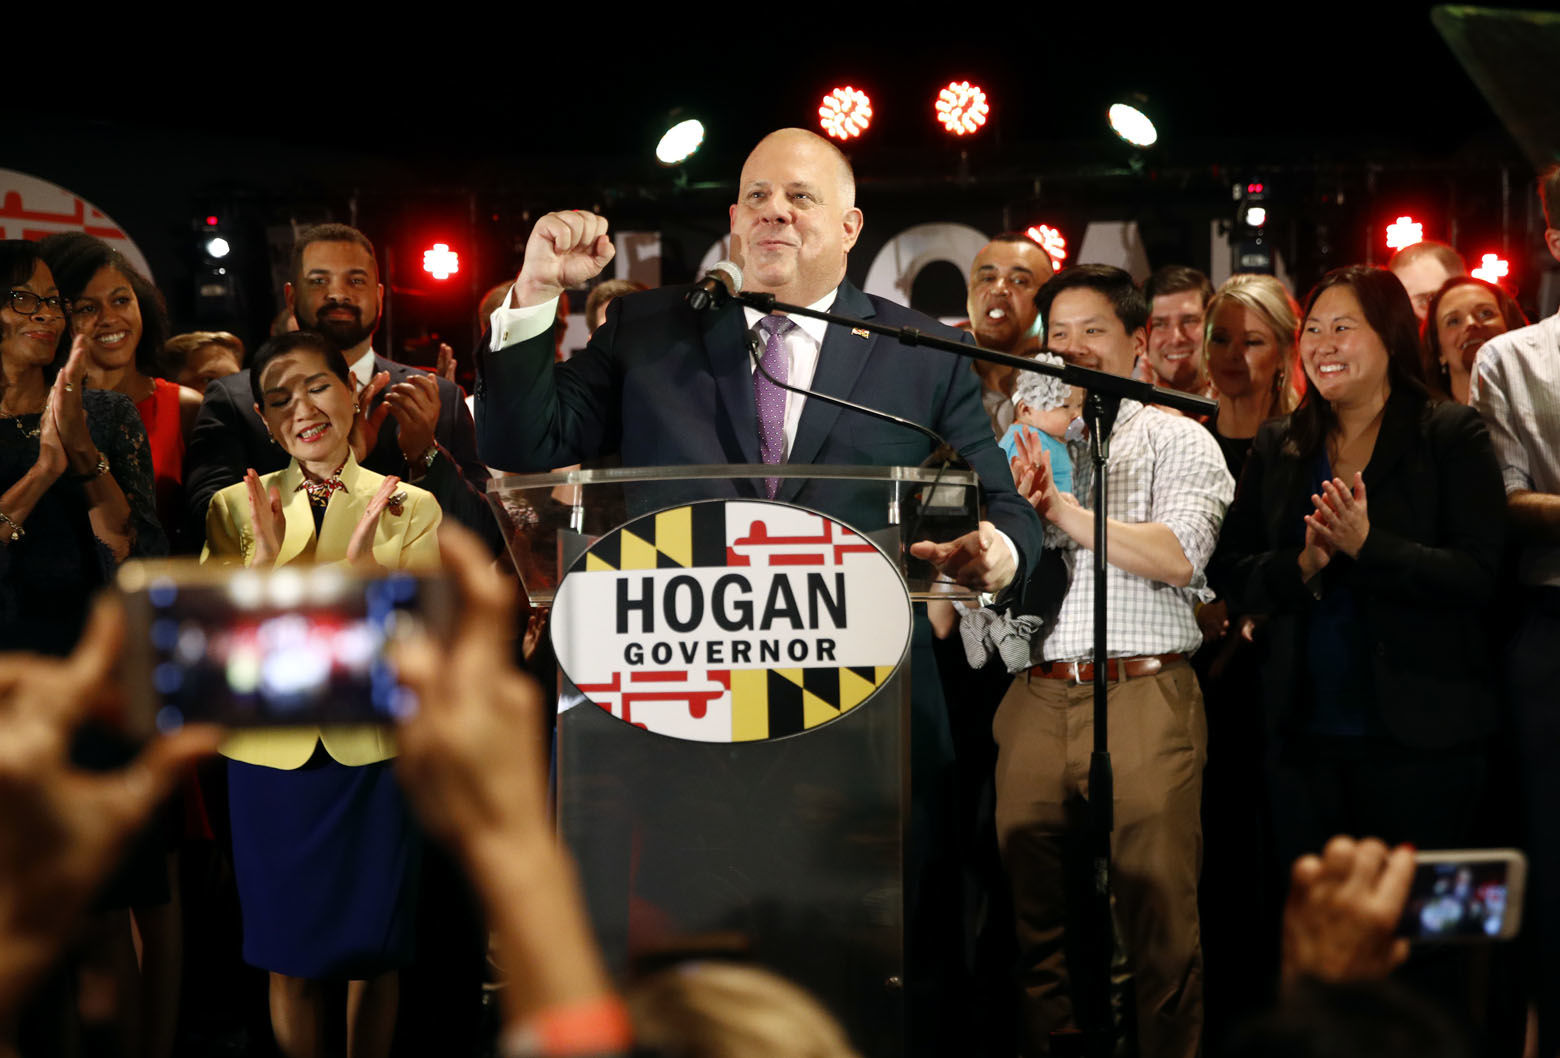 Maryland Gov. Larry Hogan, center, celebrates as he speaks at an election night party, Tuesday, Nov. 6, 2018, in Annapolis, Md. Hogan earned a second term after defeating Democratic opponent Ben Jealous. (AP Photo/Patrick Semansky)